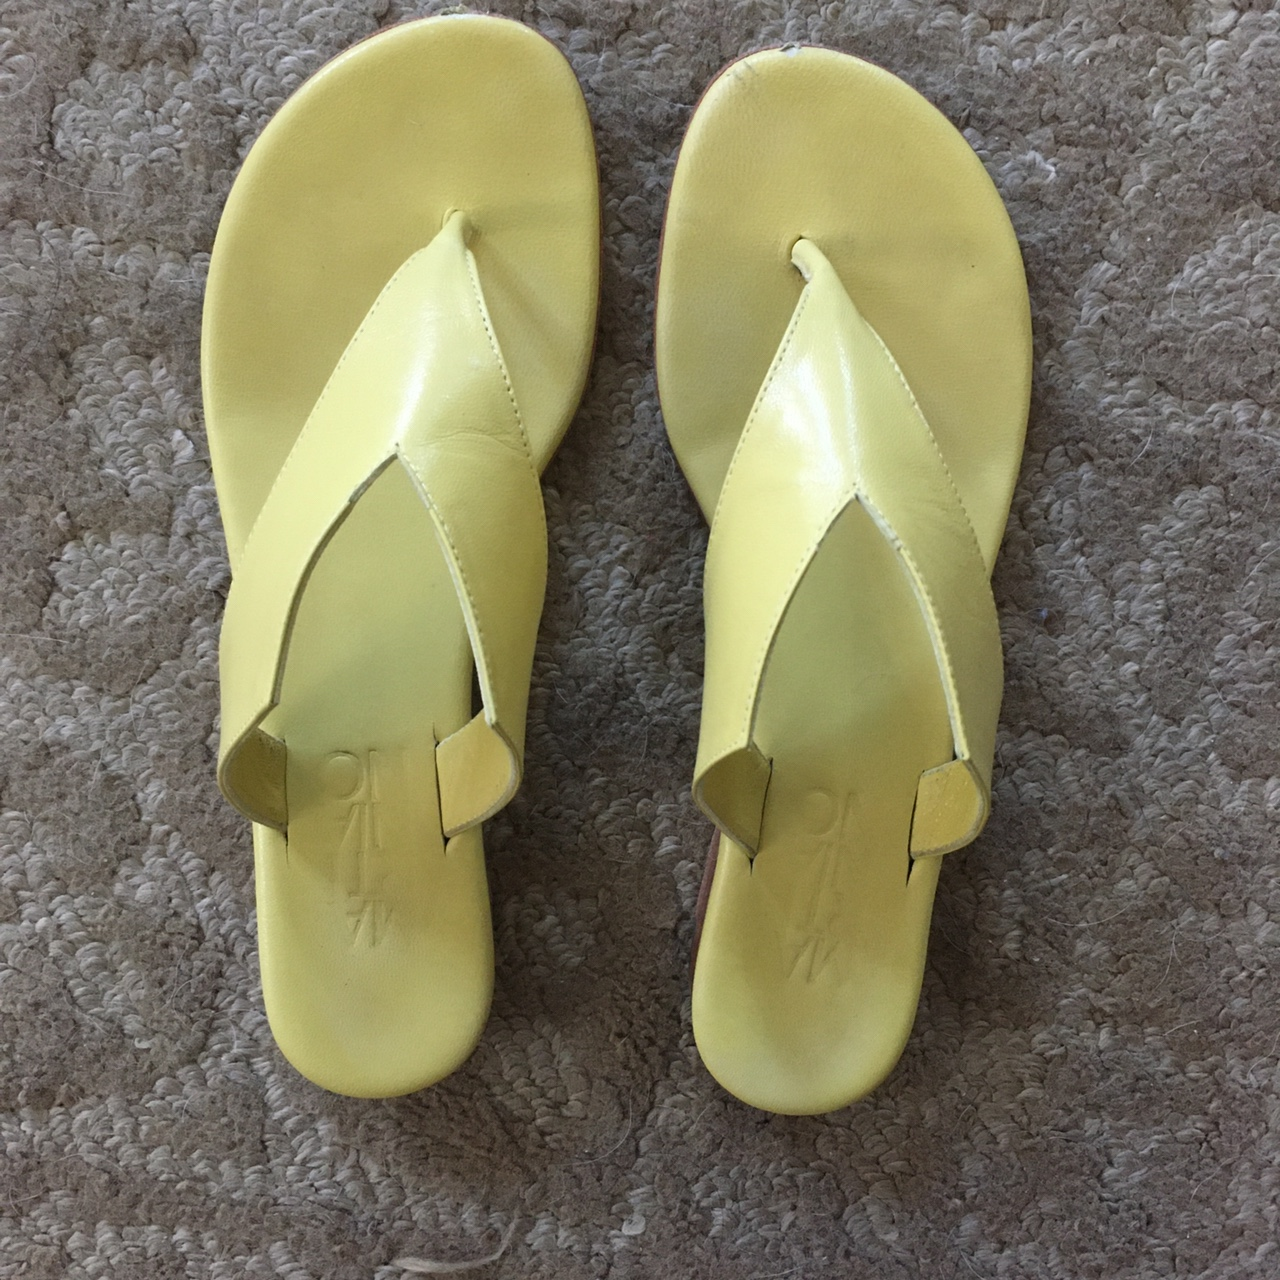 Product Image 1 - Martiniano V sandals  36, best